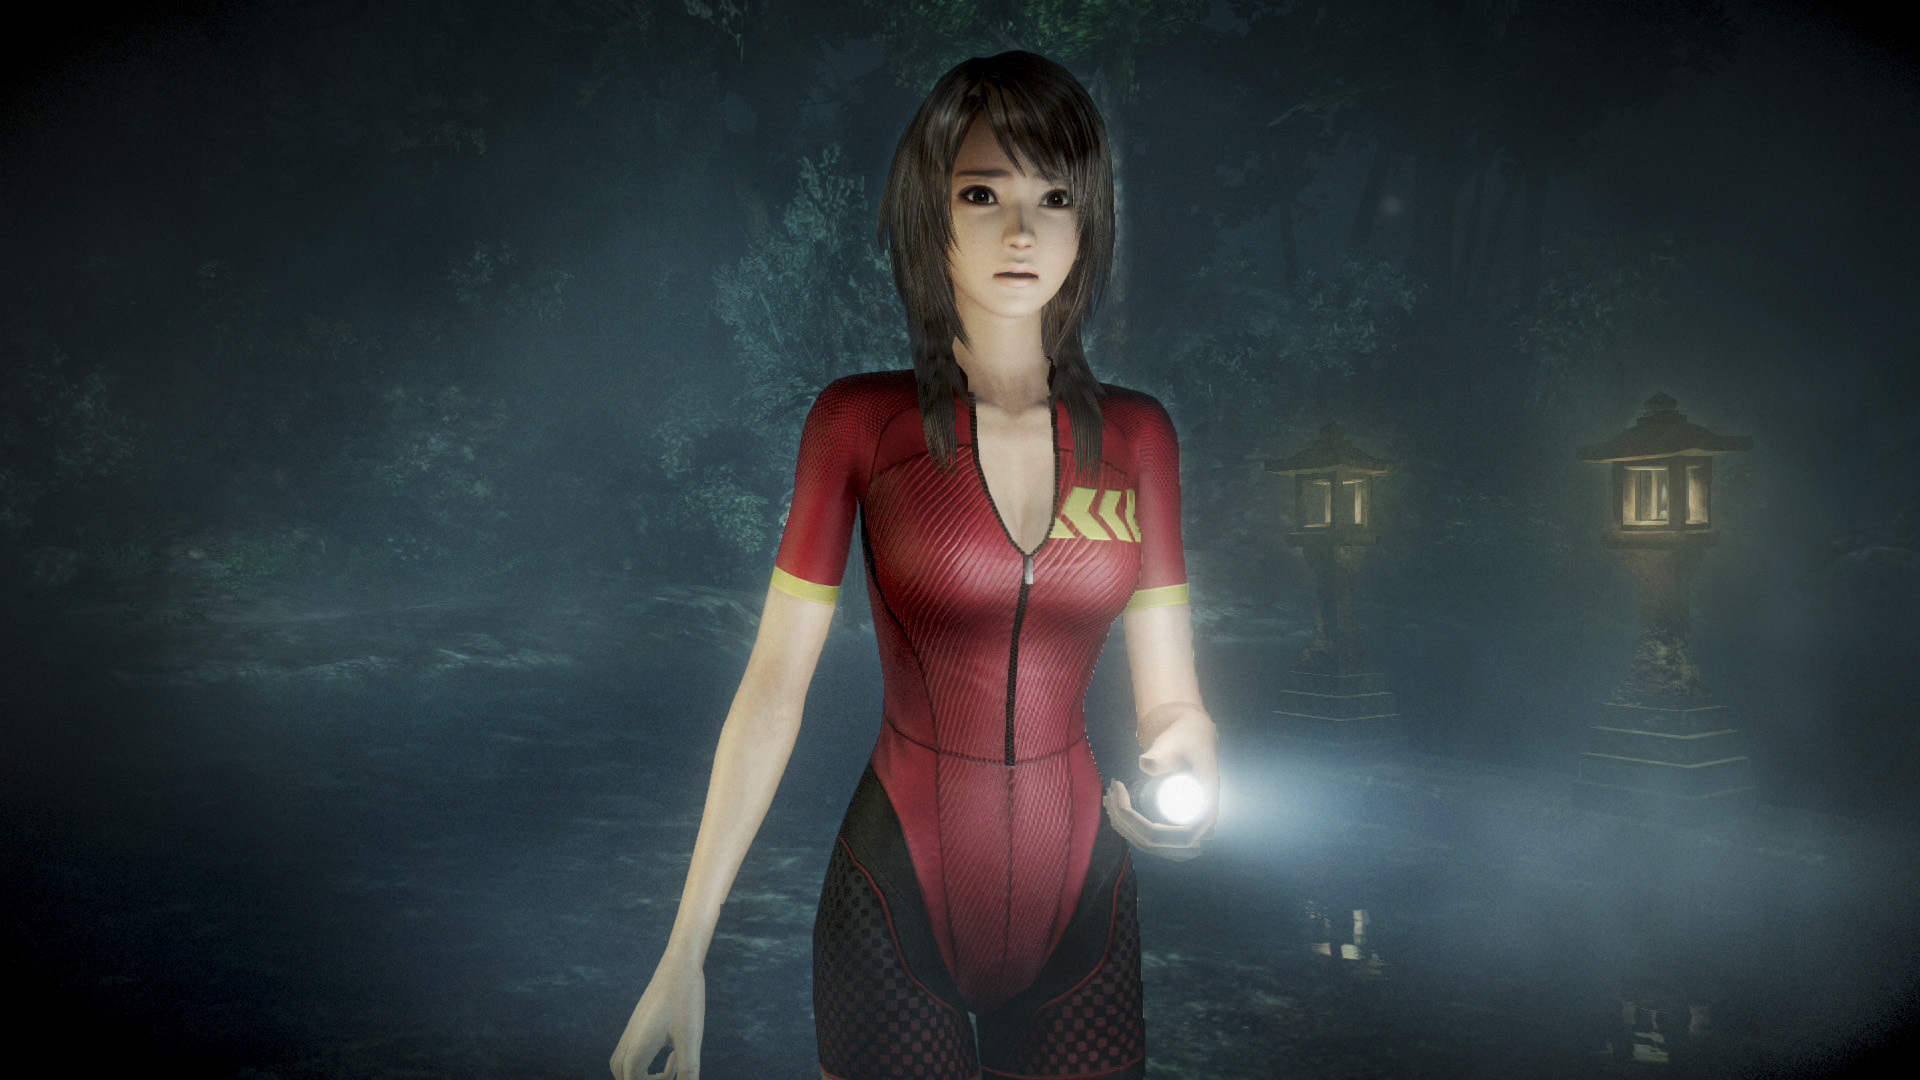 Fatal Frame Maiden of Black Water launches October 28